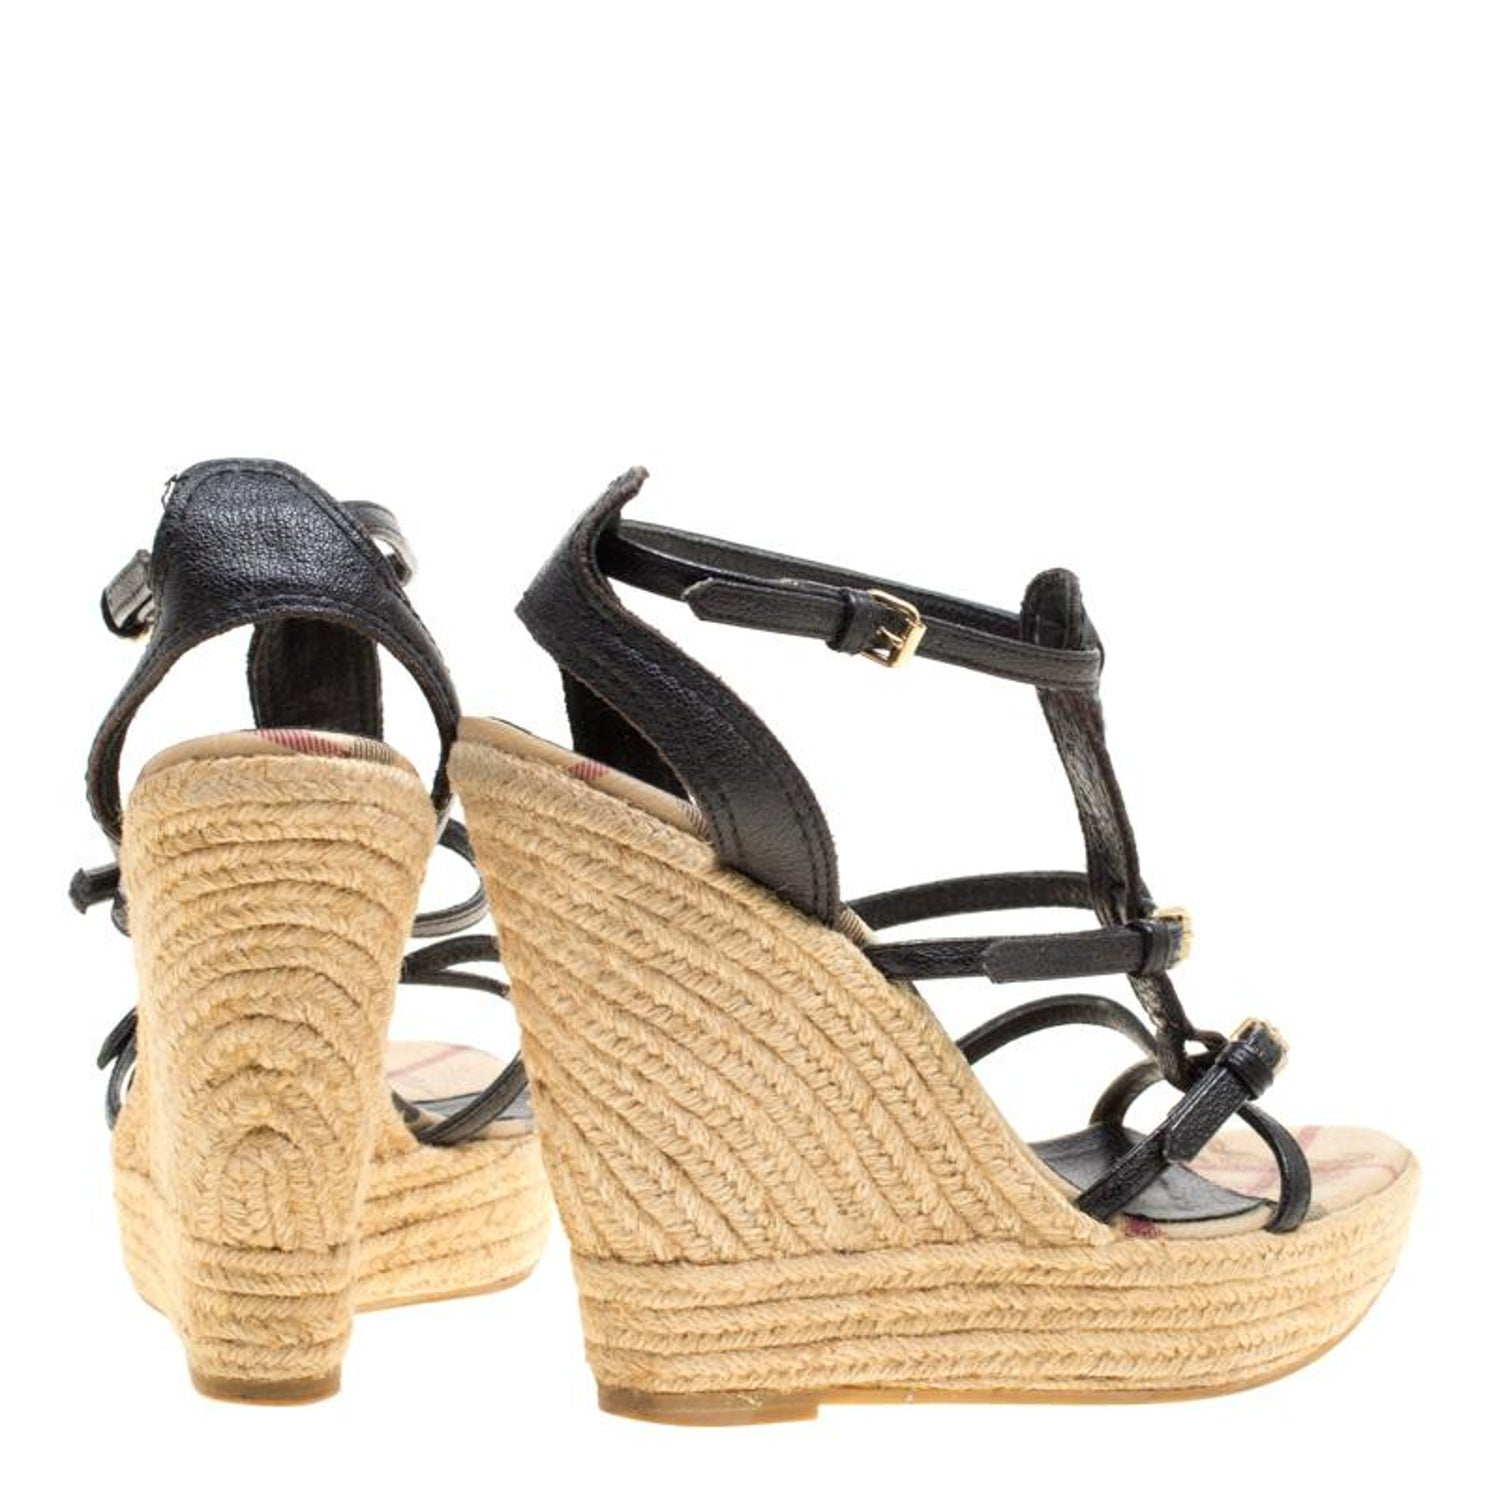 deb12d63d84 Burberry Black Leather Espadrille Wedge Sandals Size 39 For Sale at 1stdibs